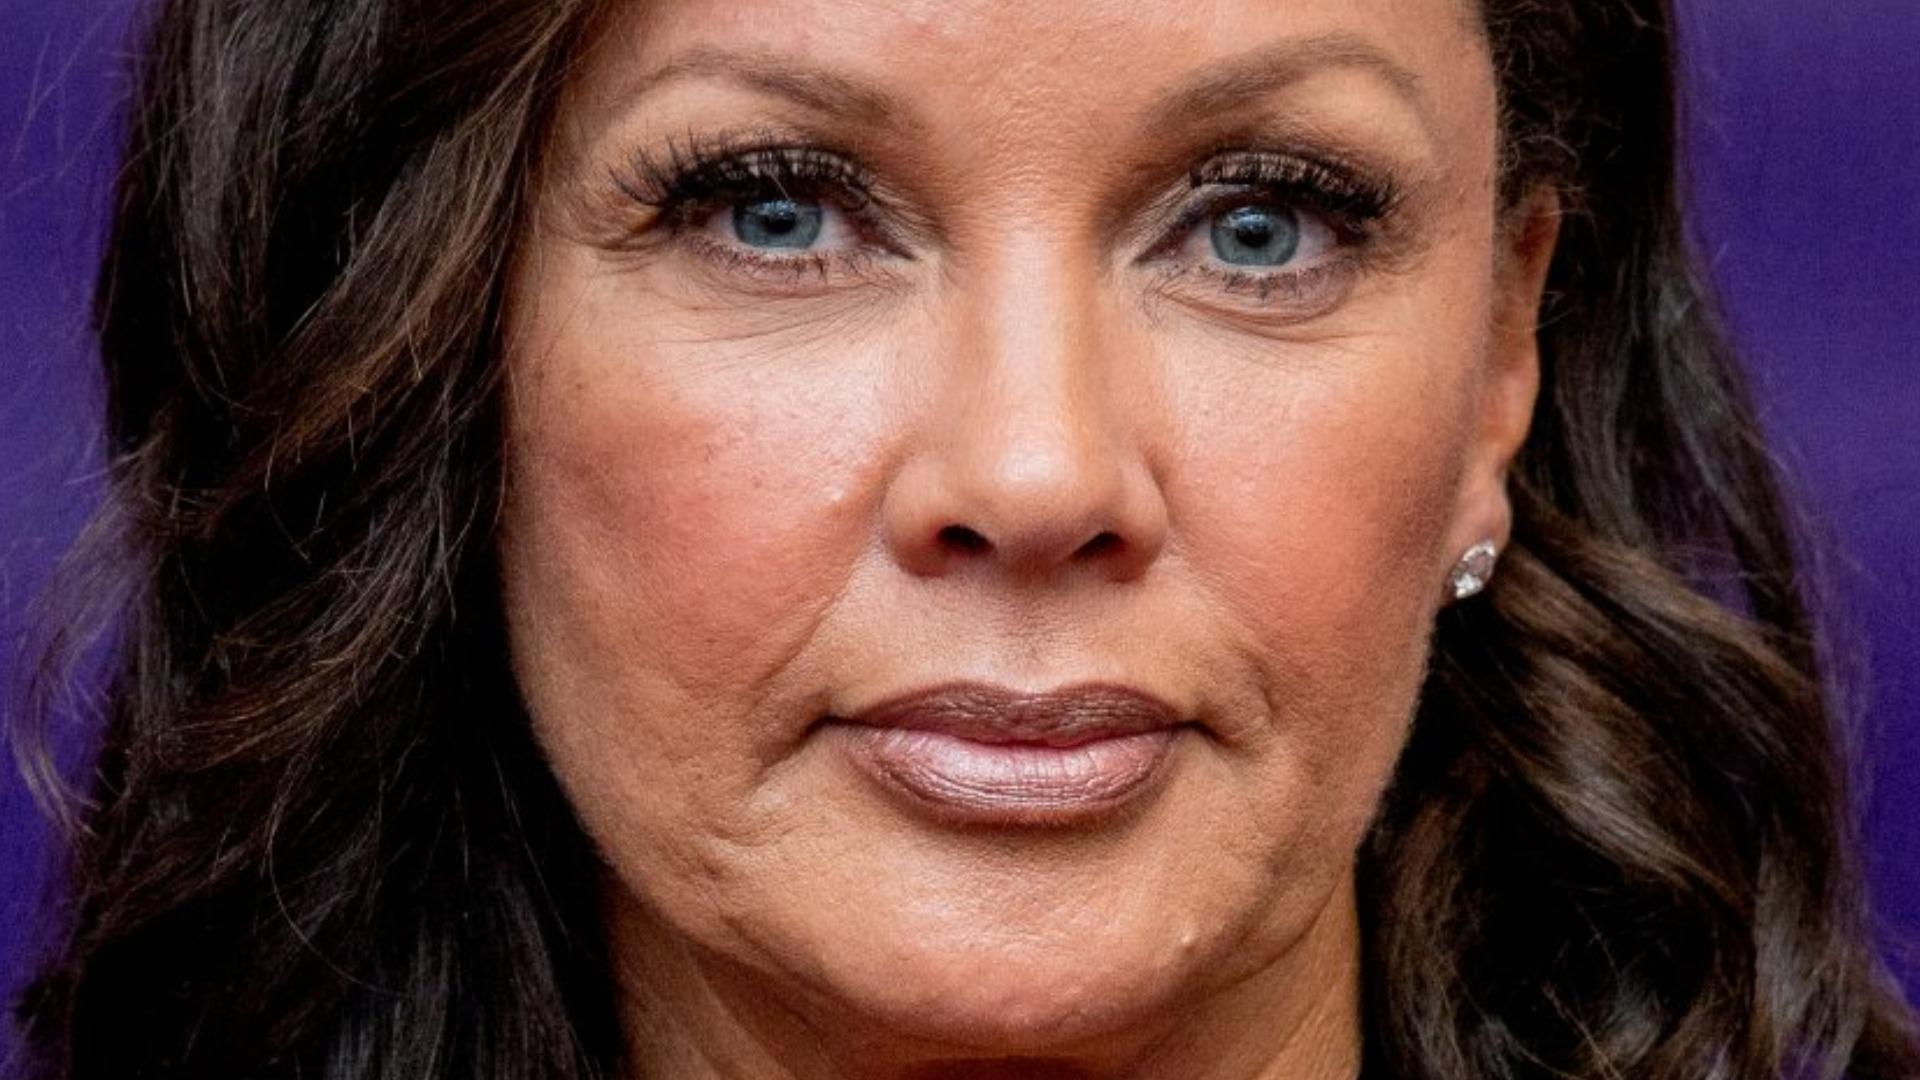 The Tragedy Surrounding Vanessa Williams Is Just Plain Sad